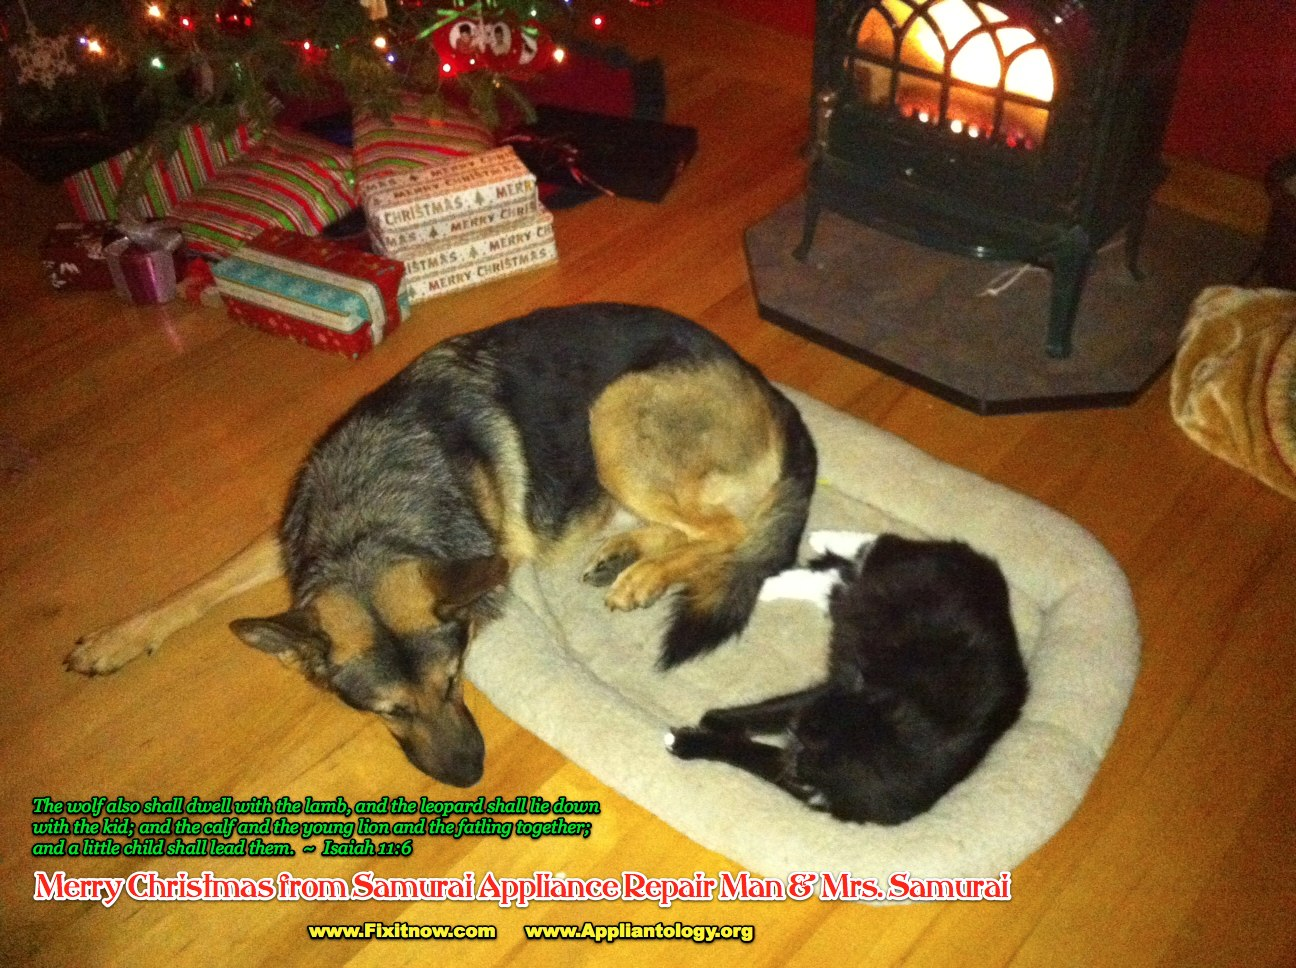 A Christmas Greeting from the Samurai's Hearth